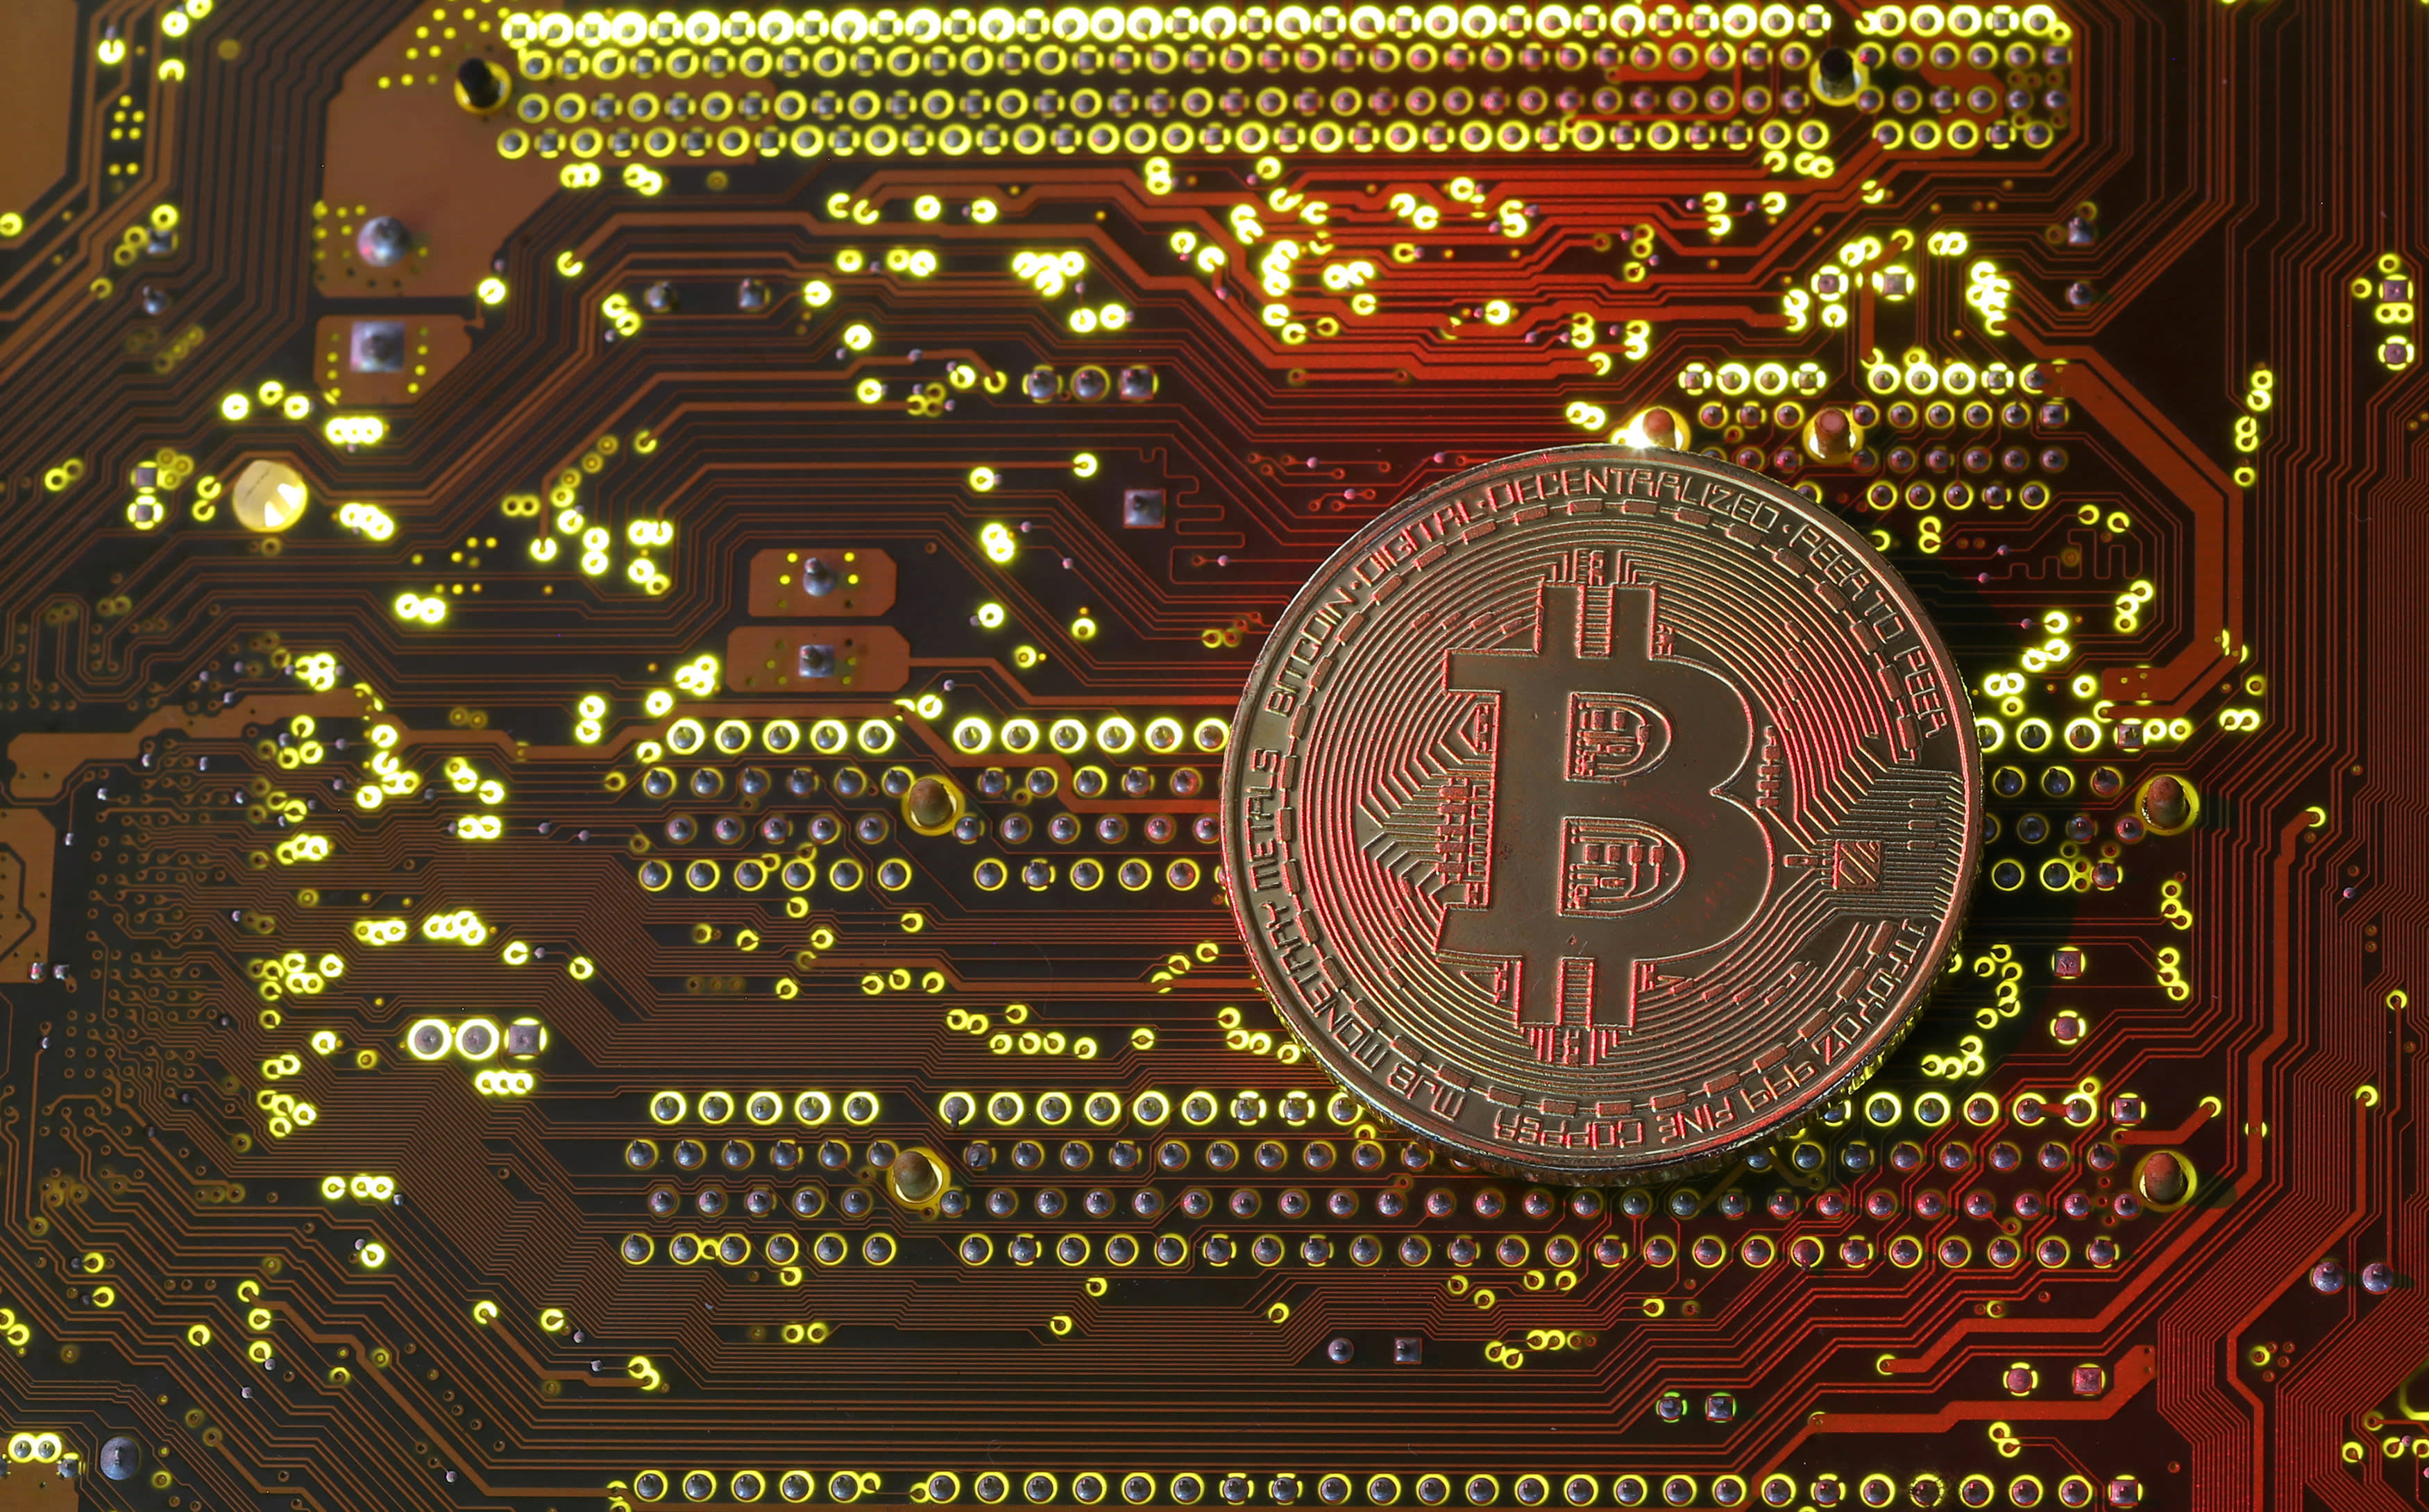 Digital currencies could be hit by FCA regulation